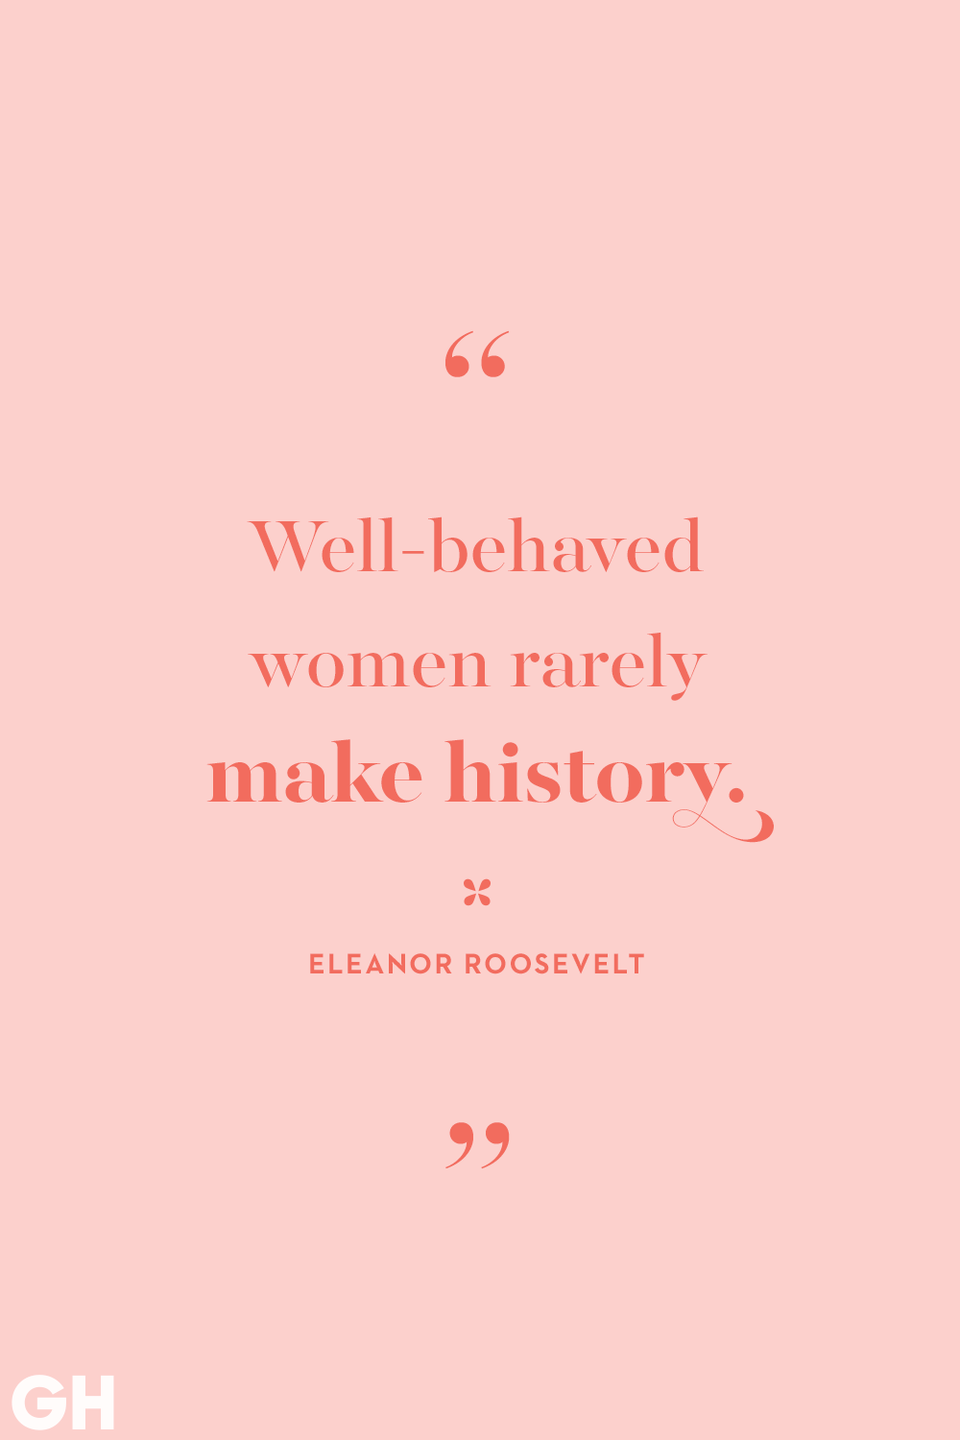 <p>Well-behaved women rarely make history.</p>